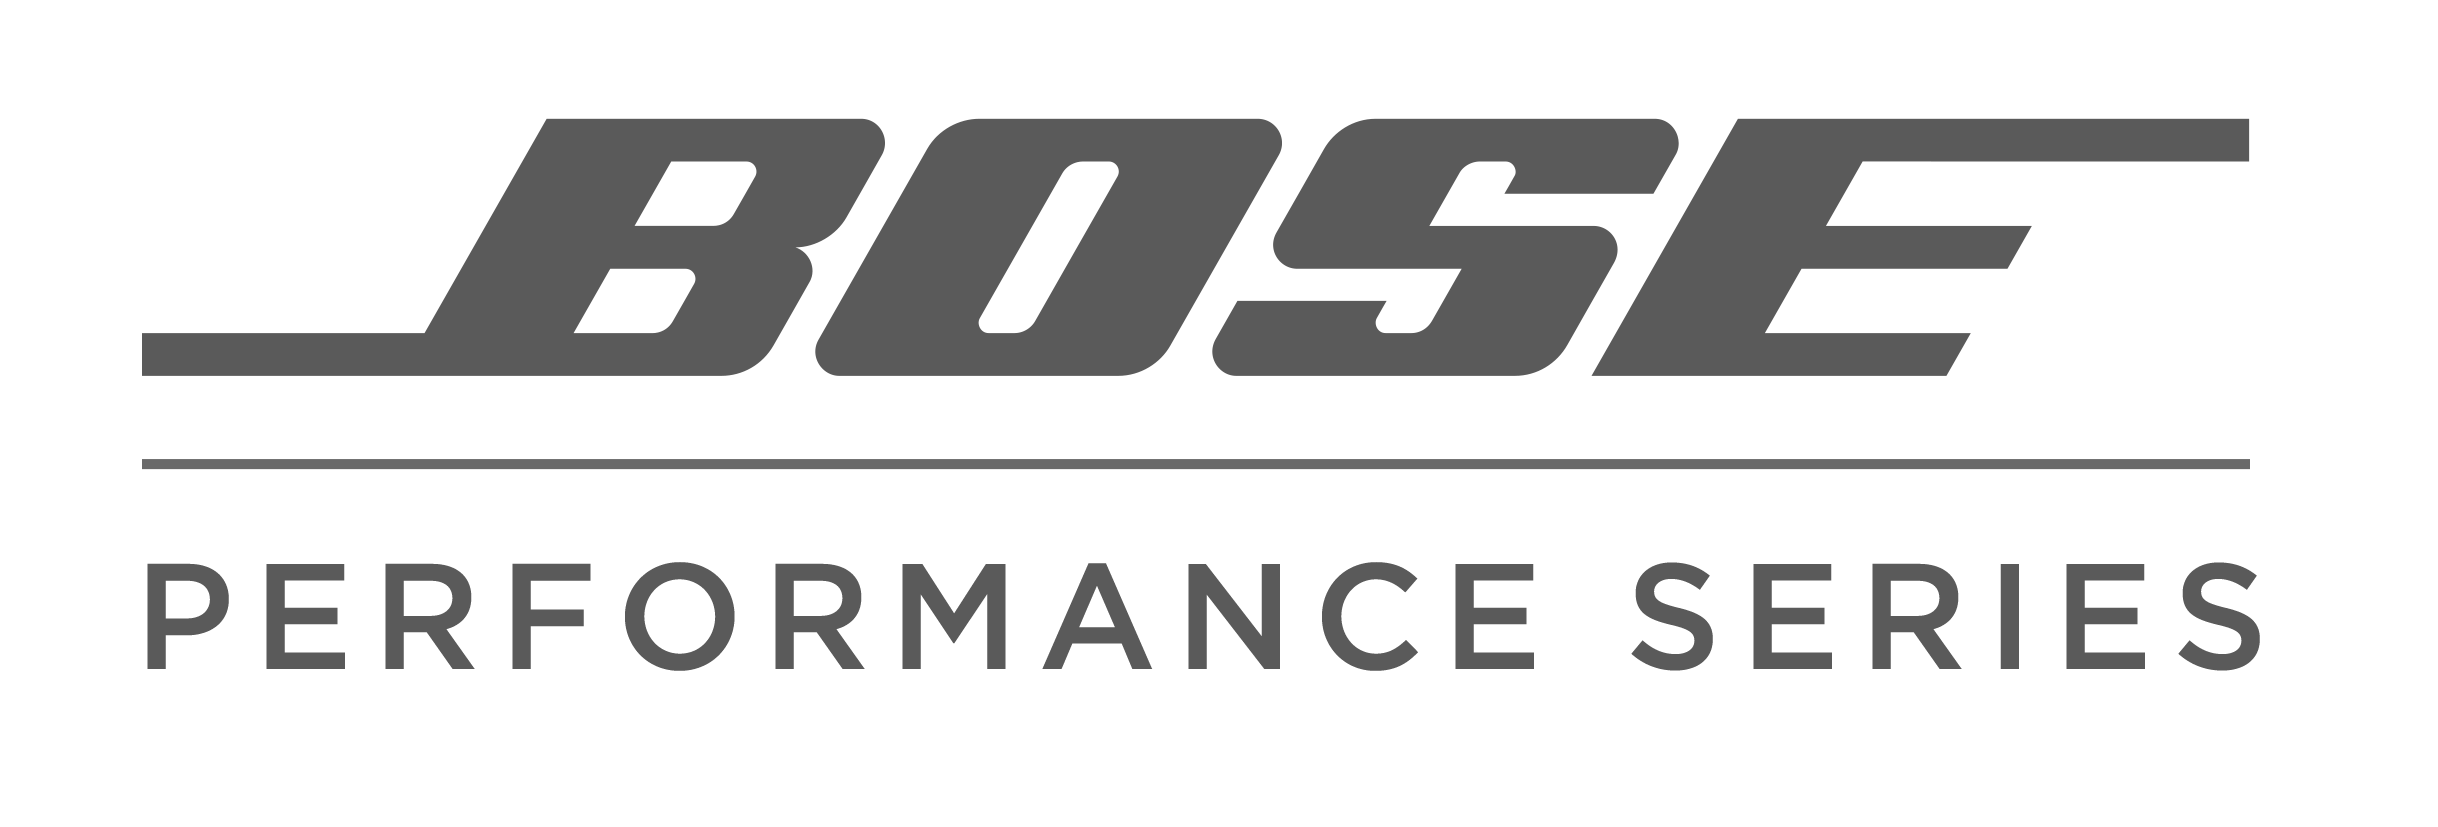 bose performance series png logo #6668